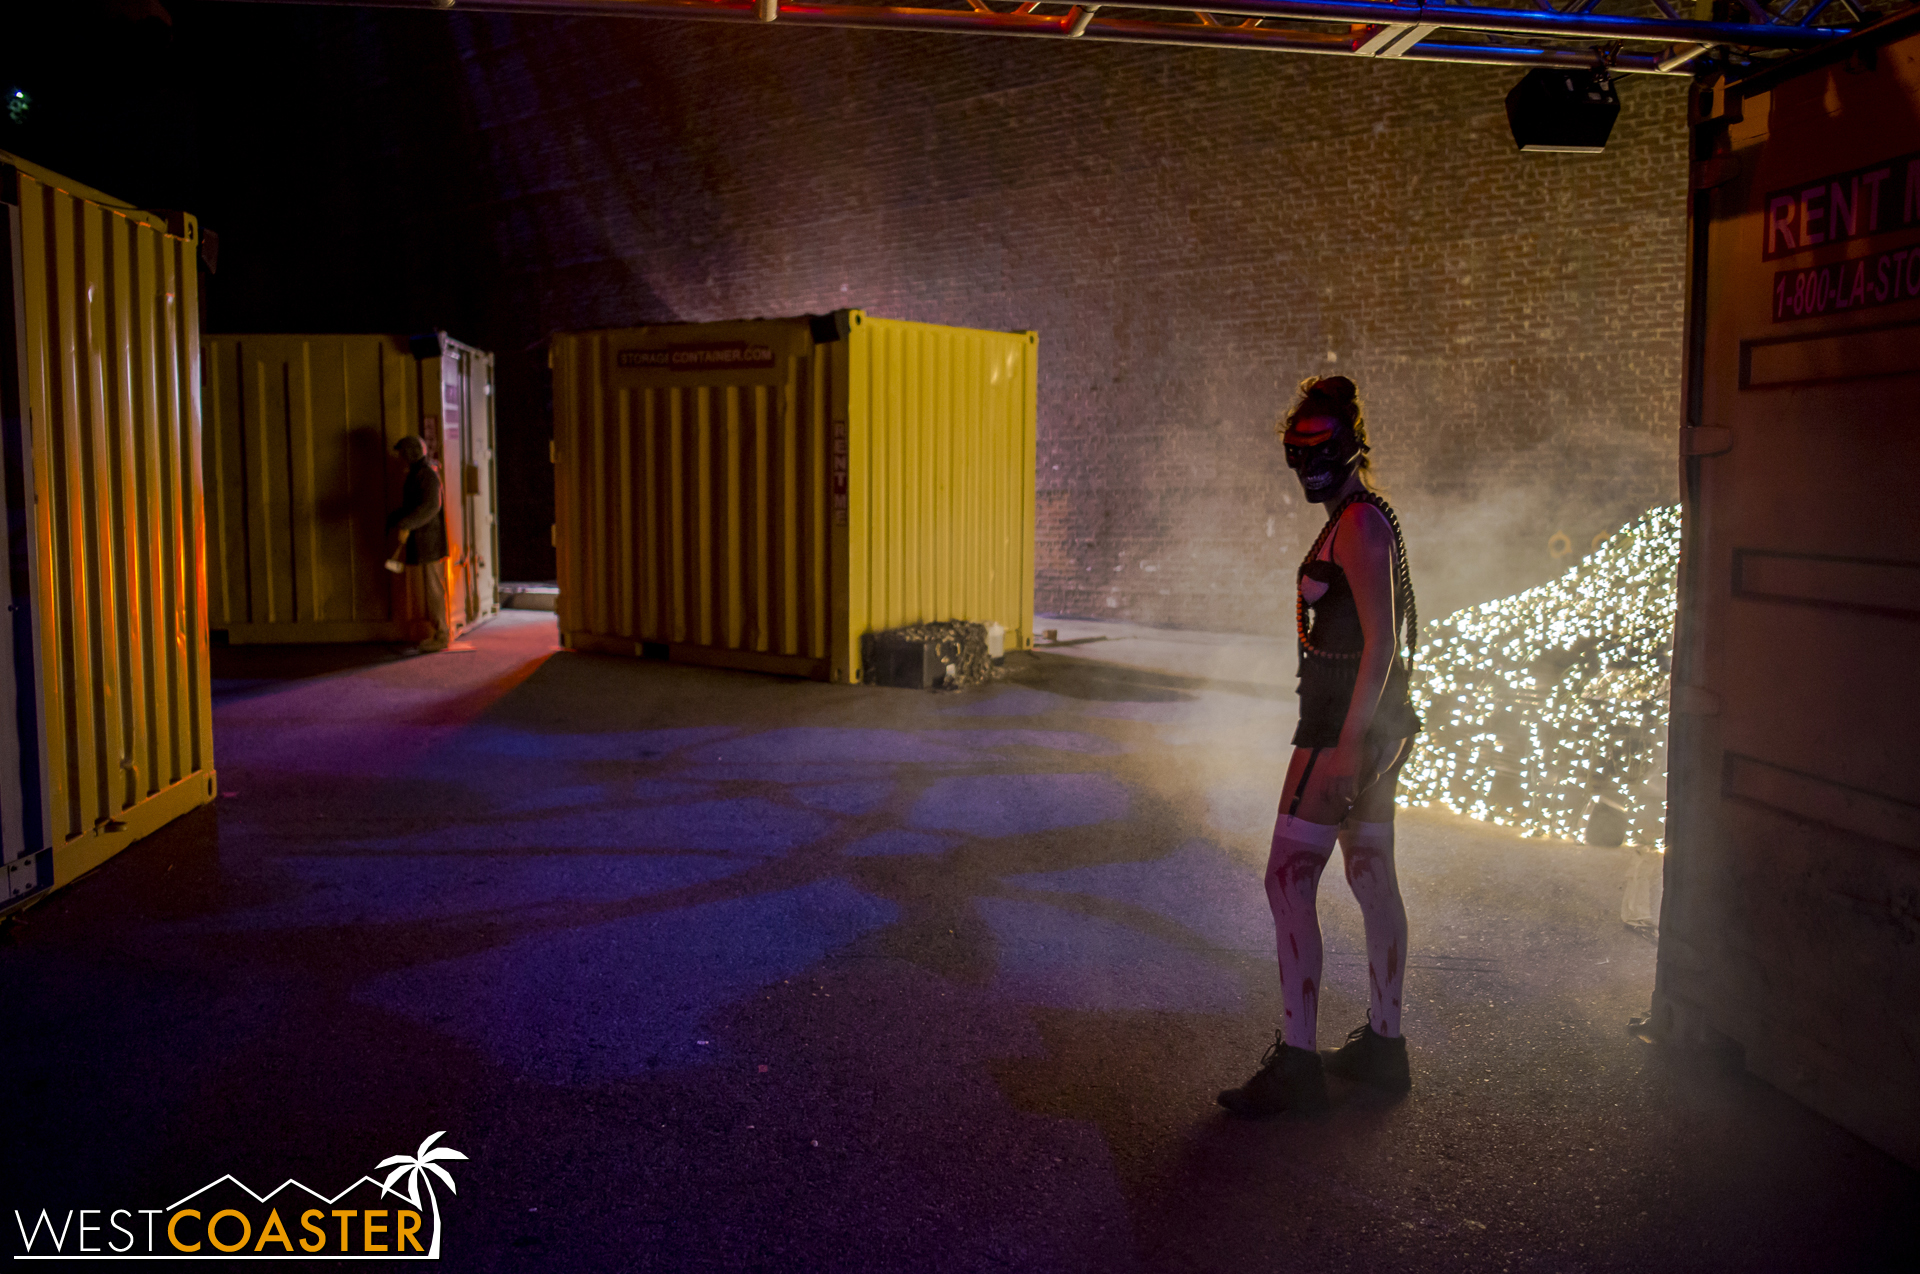 Scareactors took advantage of hiding within or behind the containers and then coming out of nowhere toward guests.